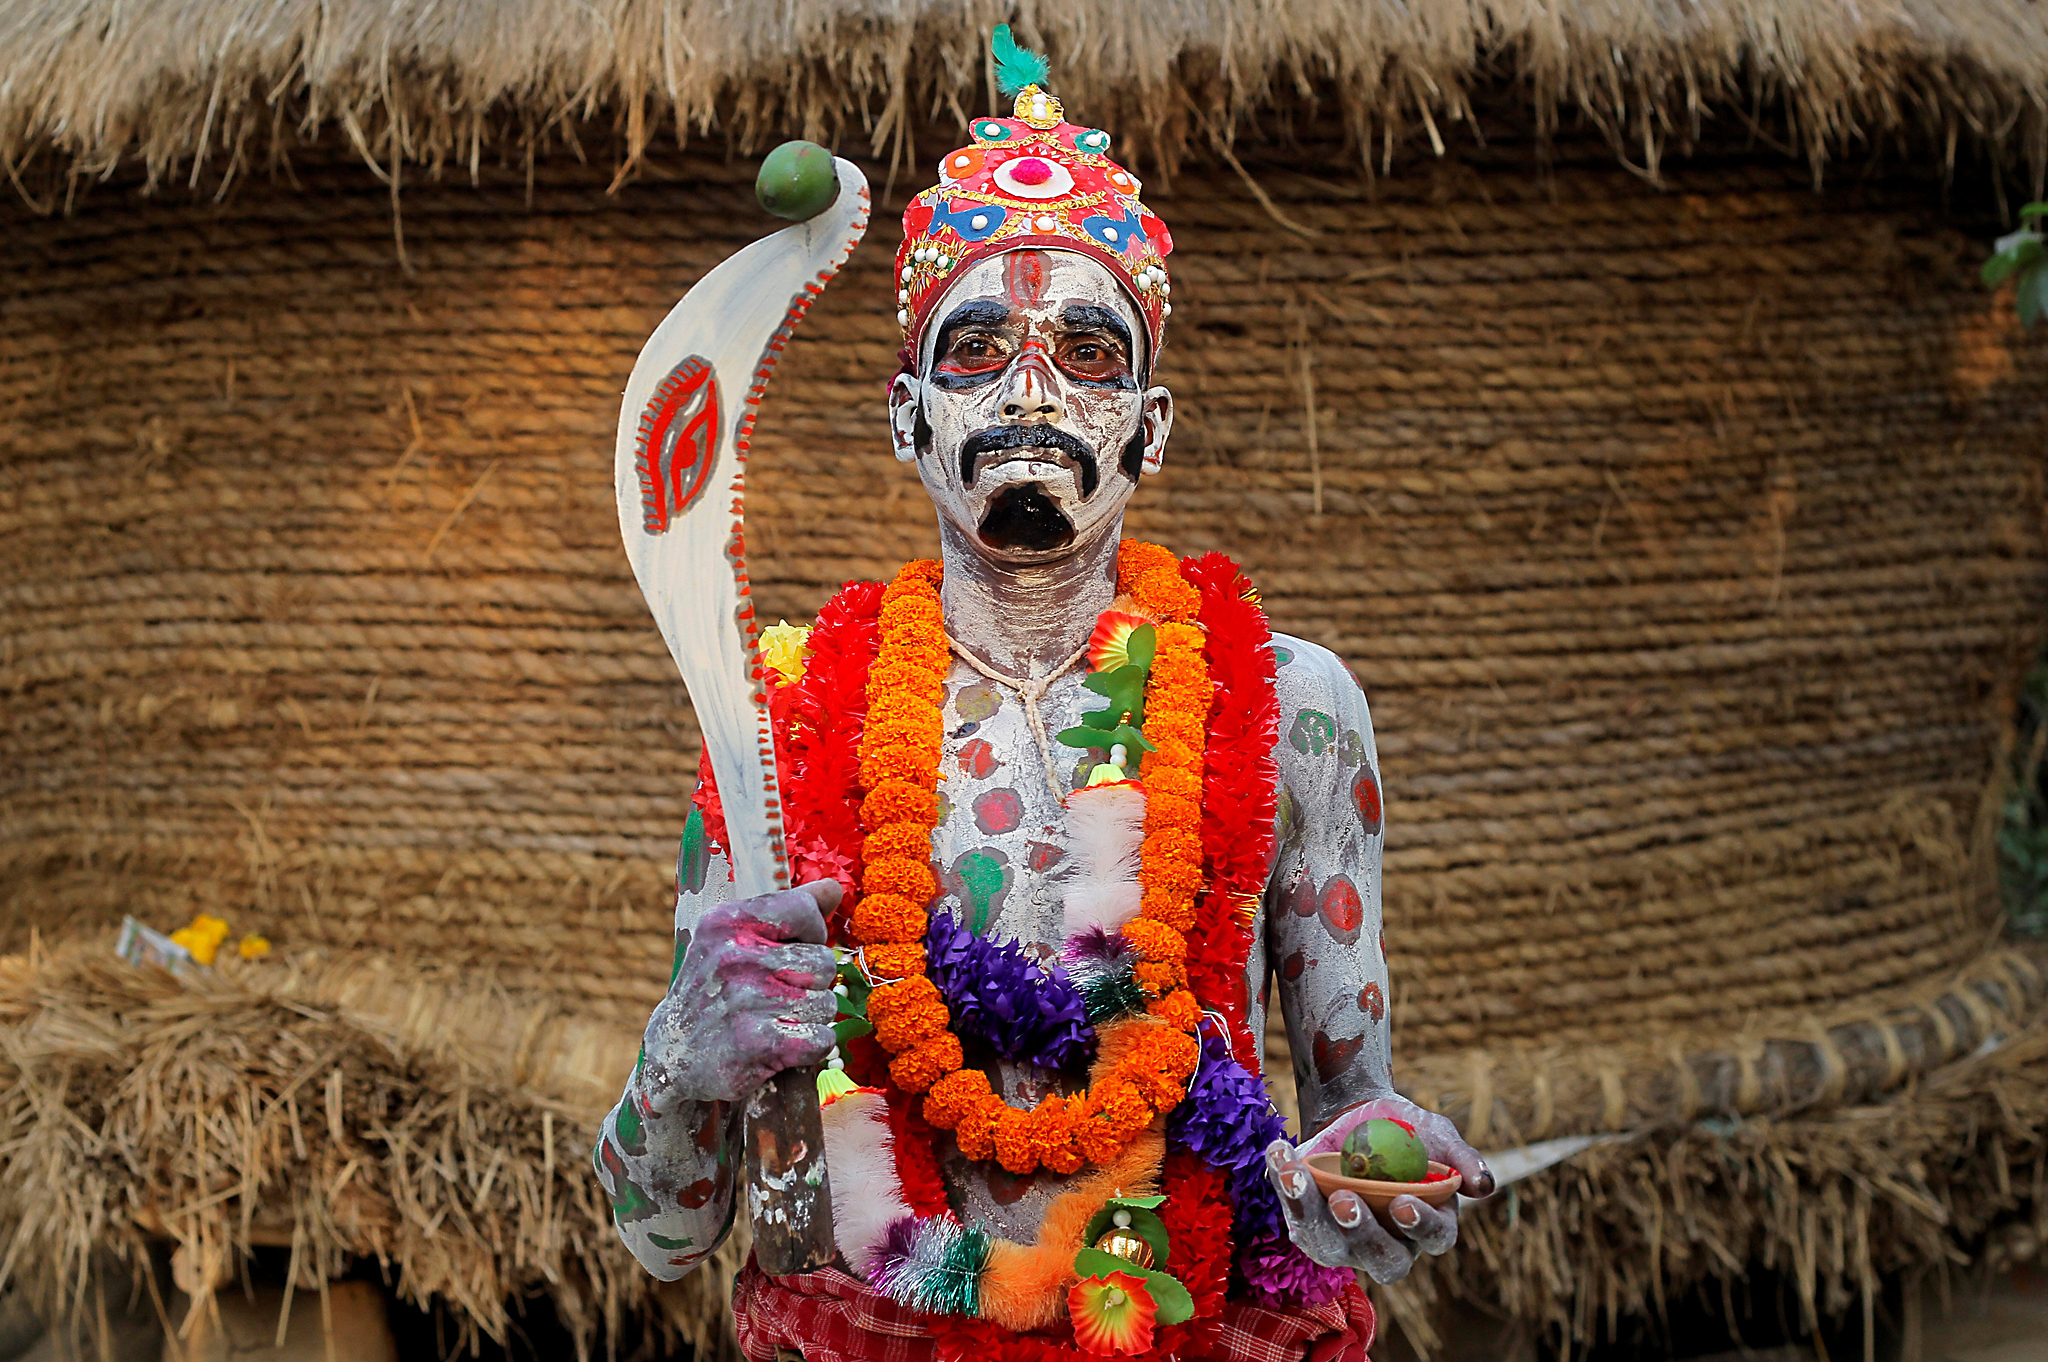 A devotee with his body painted poses as he waits to perform during a ritual as part of the annual Shiva Gajan religious festival at Sona Palasi village, in West Bengal, India, April 11, 2016. Devotees offer sacrifices and perform acts of devotion during the festival in the hopes of winning the favour of Hindu god Shiva and ensuring the fulfillment of their wishes, and also to mark the end of the Bengali calendar year. REUTERS/Rupak De Chowdhuri TPX IMAGES OF THE DAY